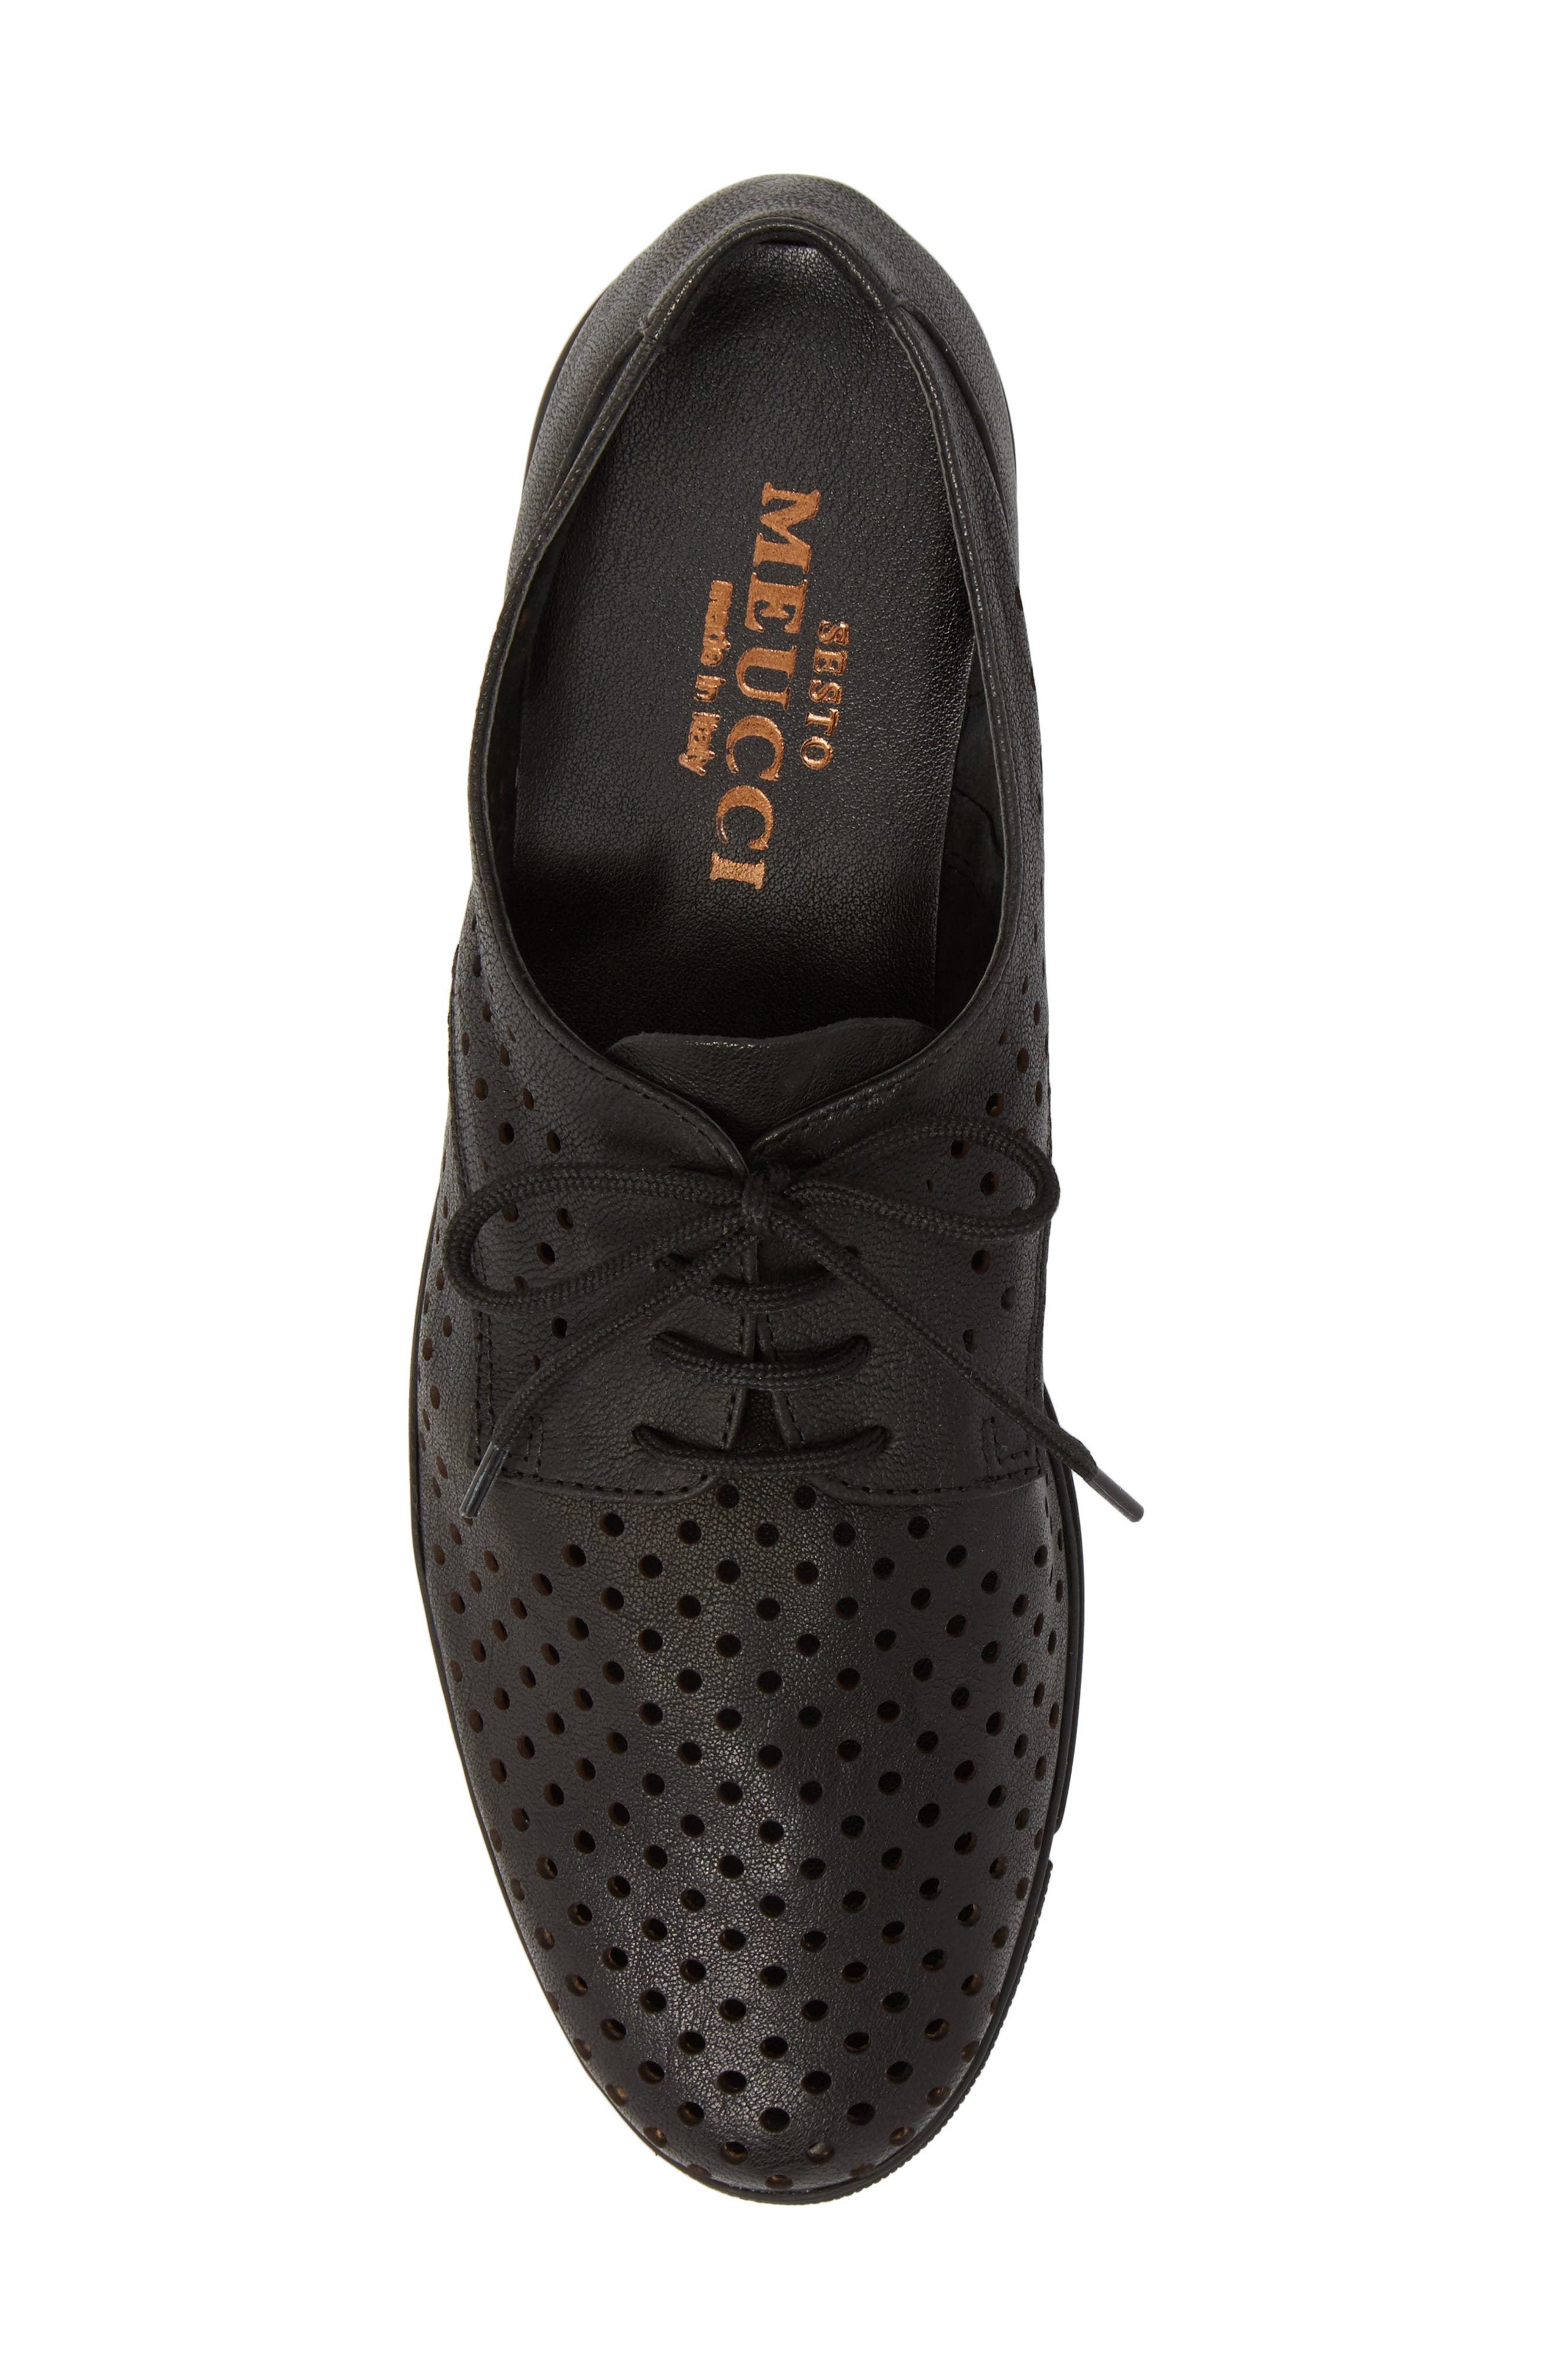 Dirce Perforated Oxford Flat,                             Alternate thumbnail 5, color,                             001